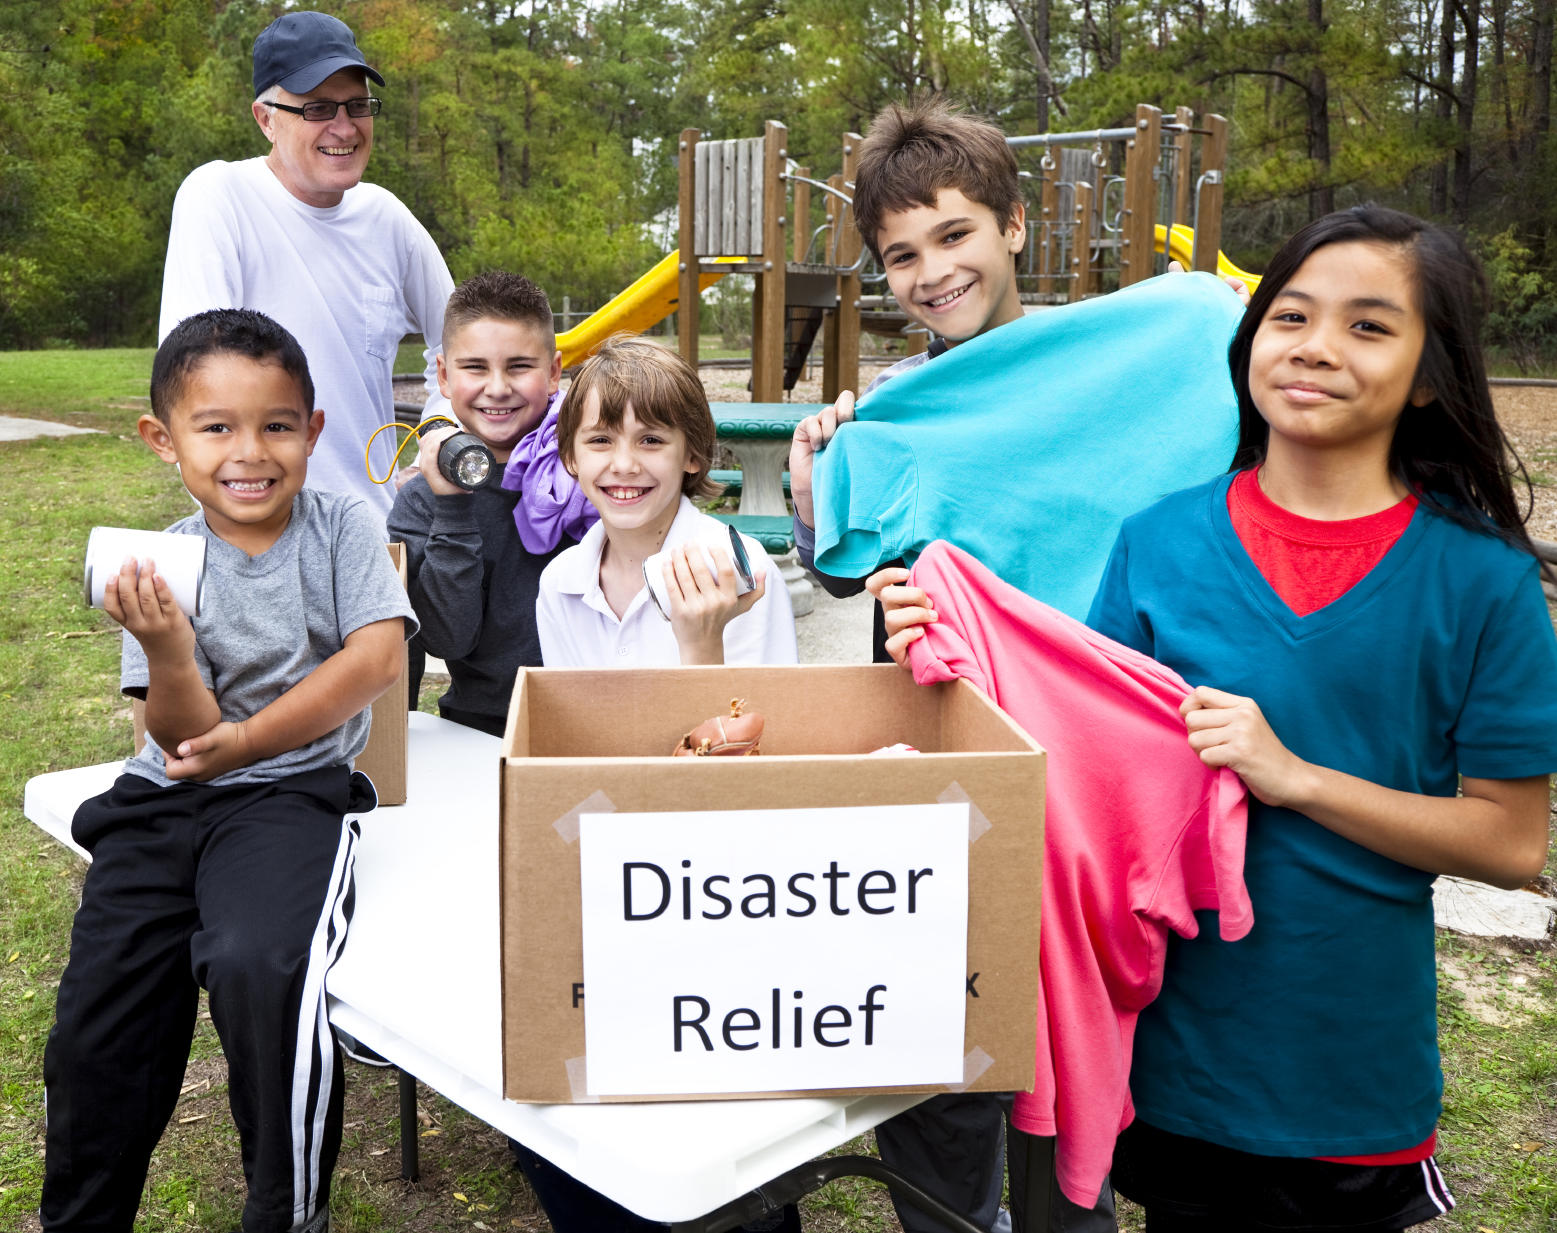 Kids collecting items for disaster relief